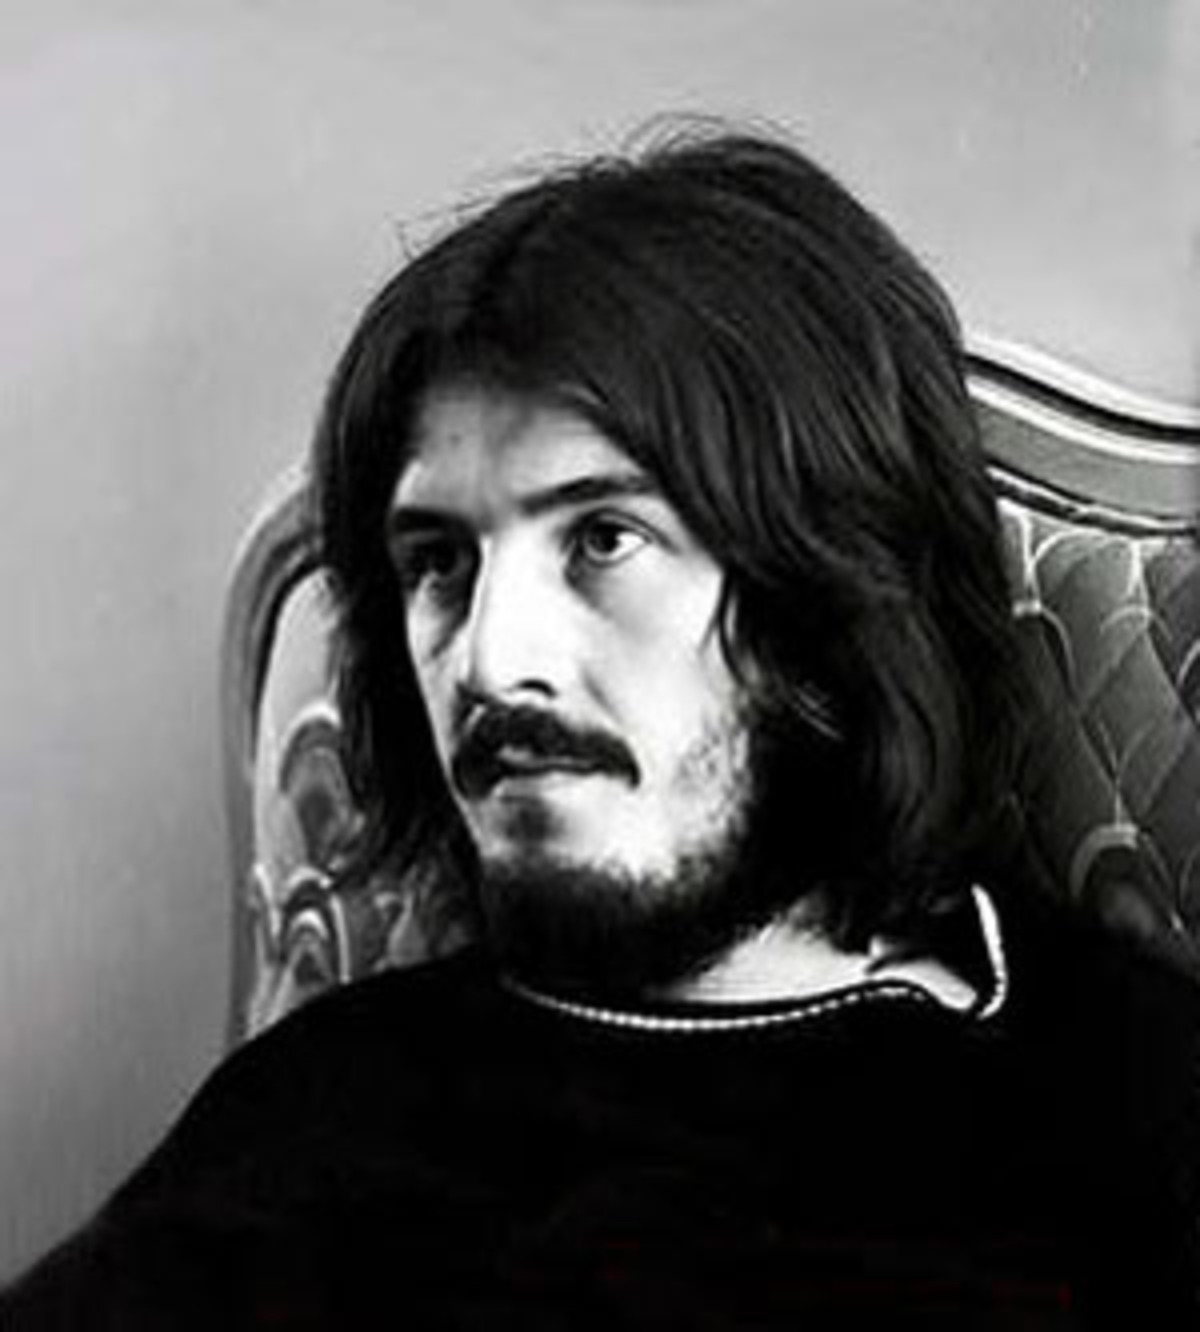 Legendary Led Zeppelin drummer John Bonham is buried in Rushock, near Droitwich